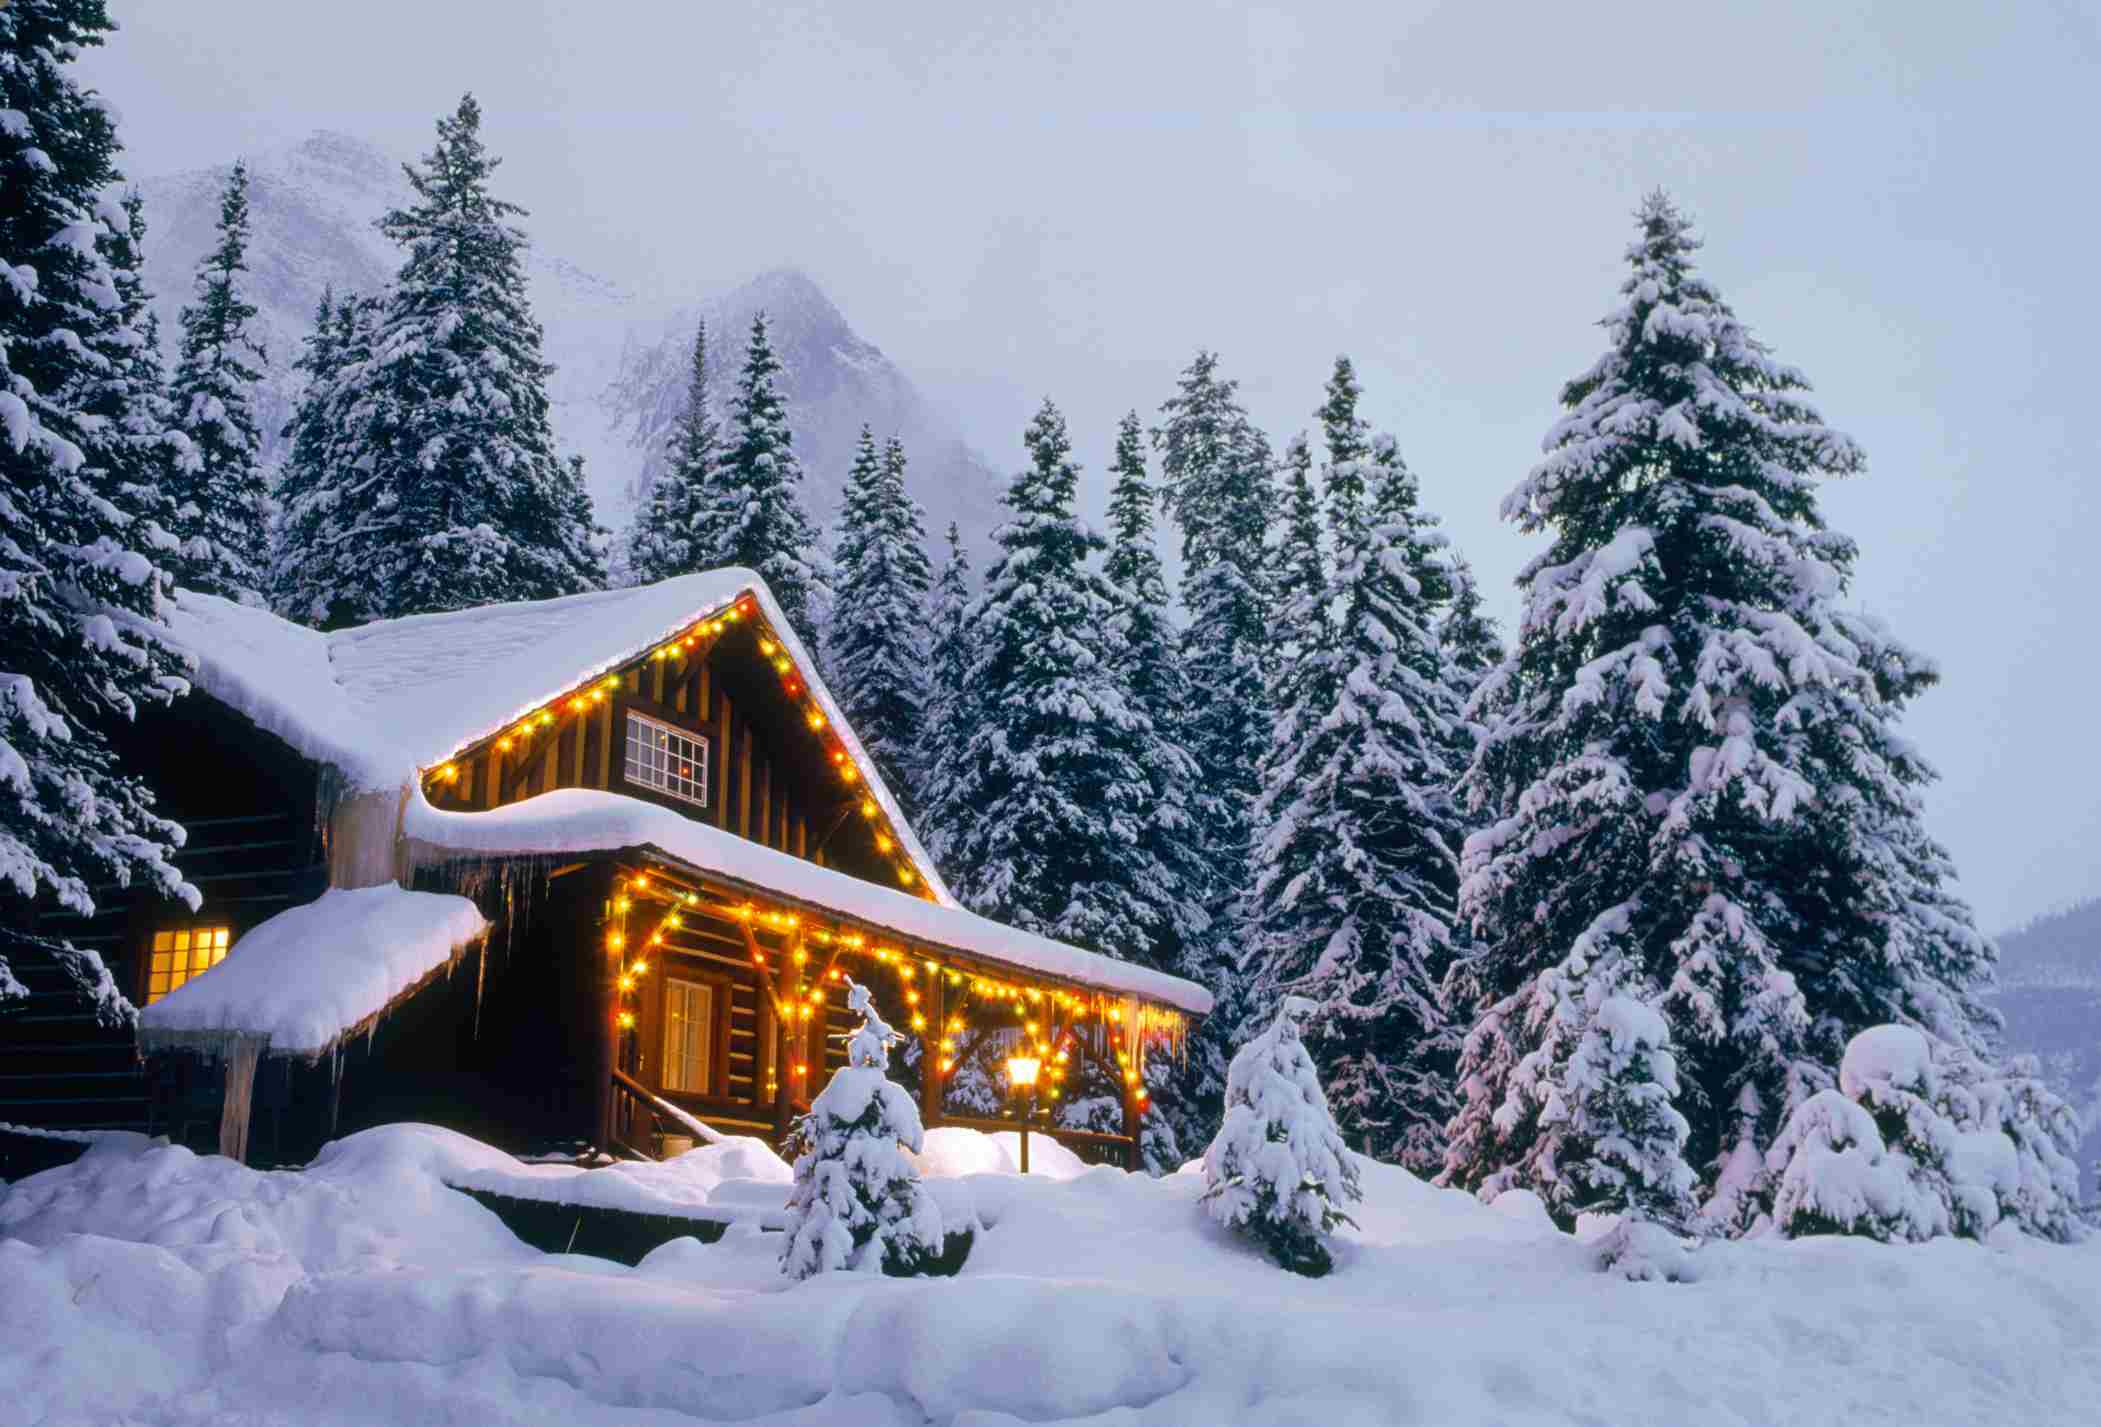 Cabin in the Woods, Winter, Christmas Lights